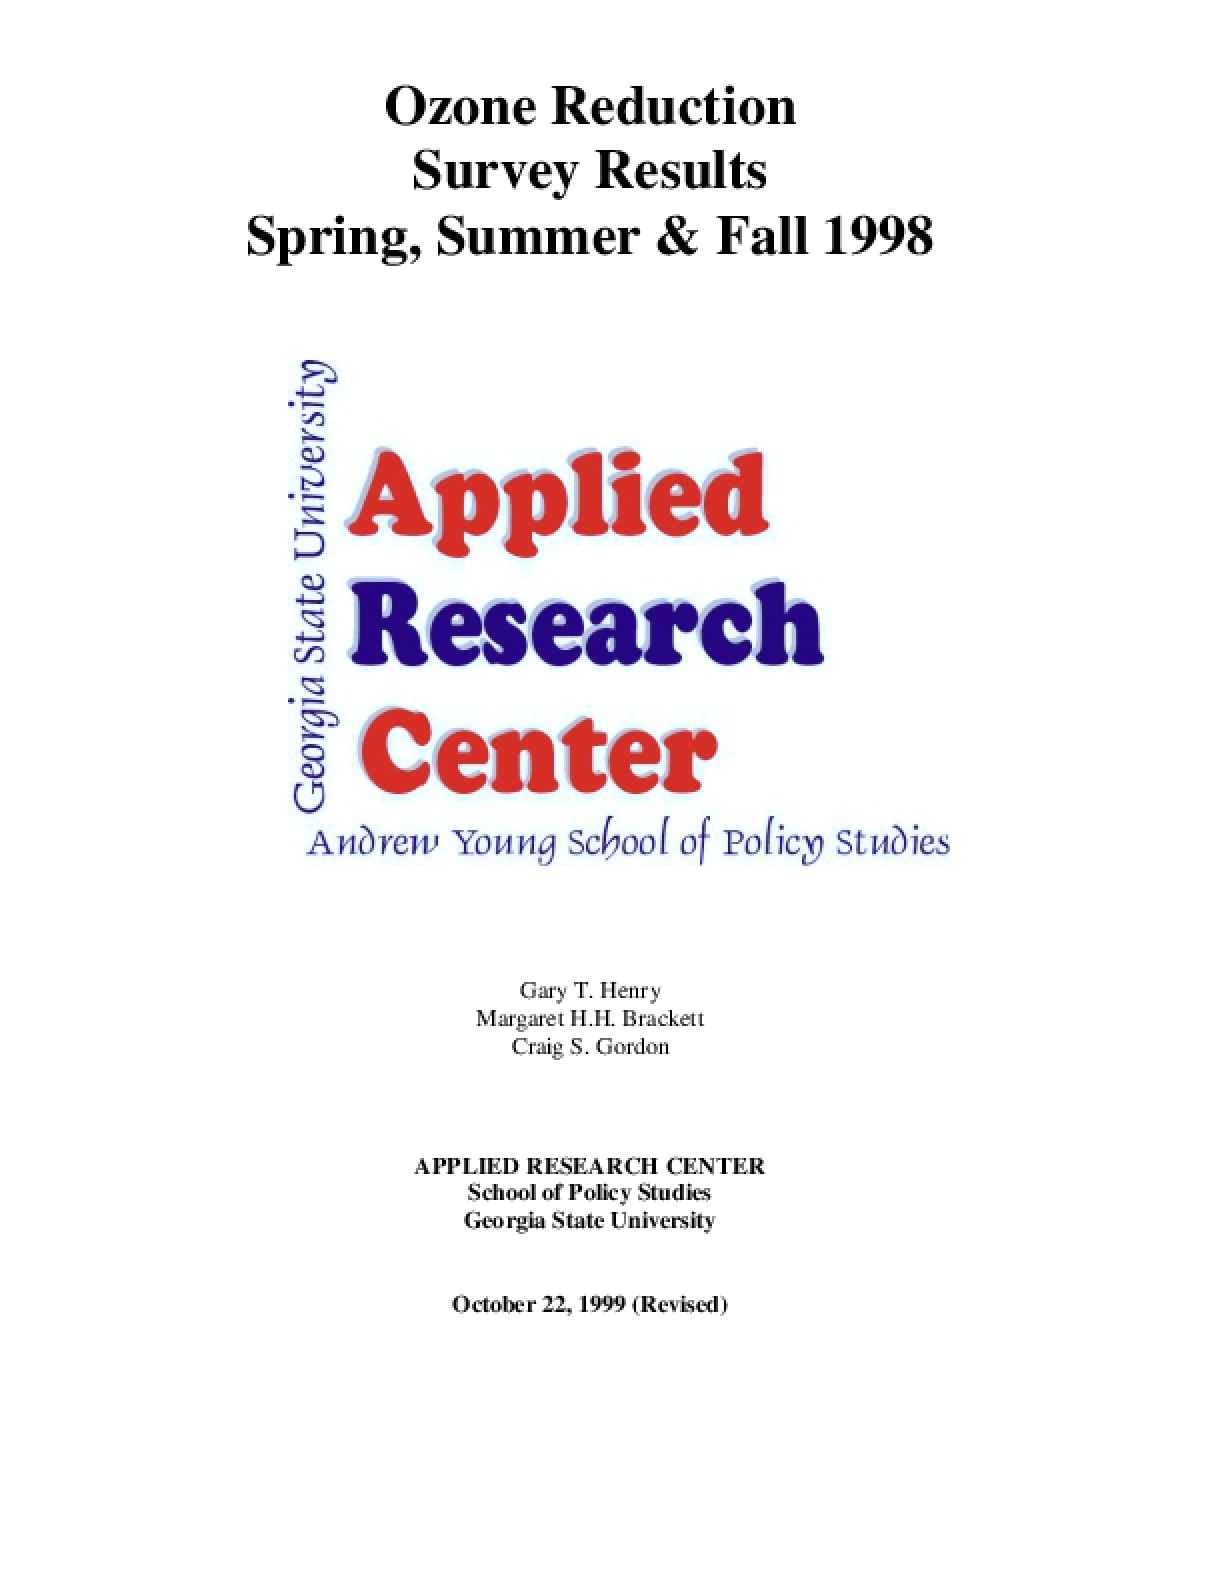 Ozone Reduction Survey Results: The Spring, Summer & Fall 98 Inside Georgia State Summer School Schedule